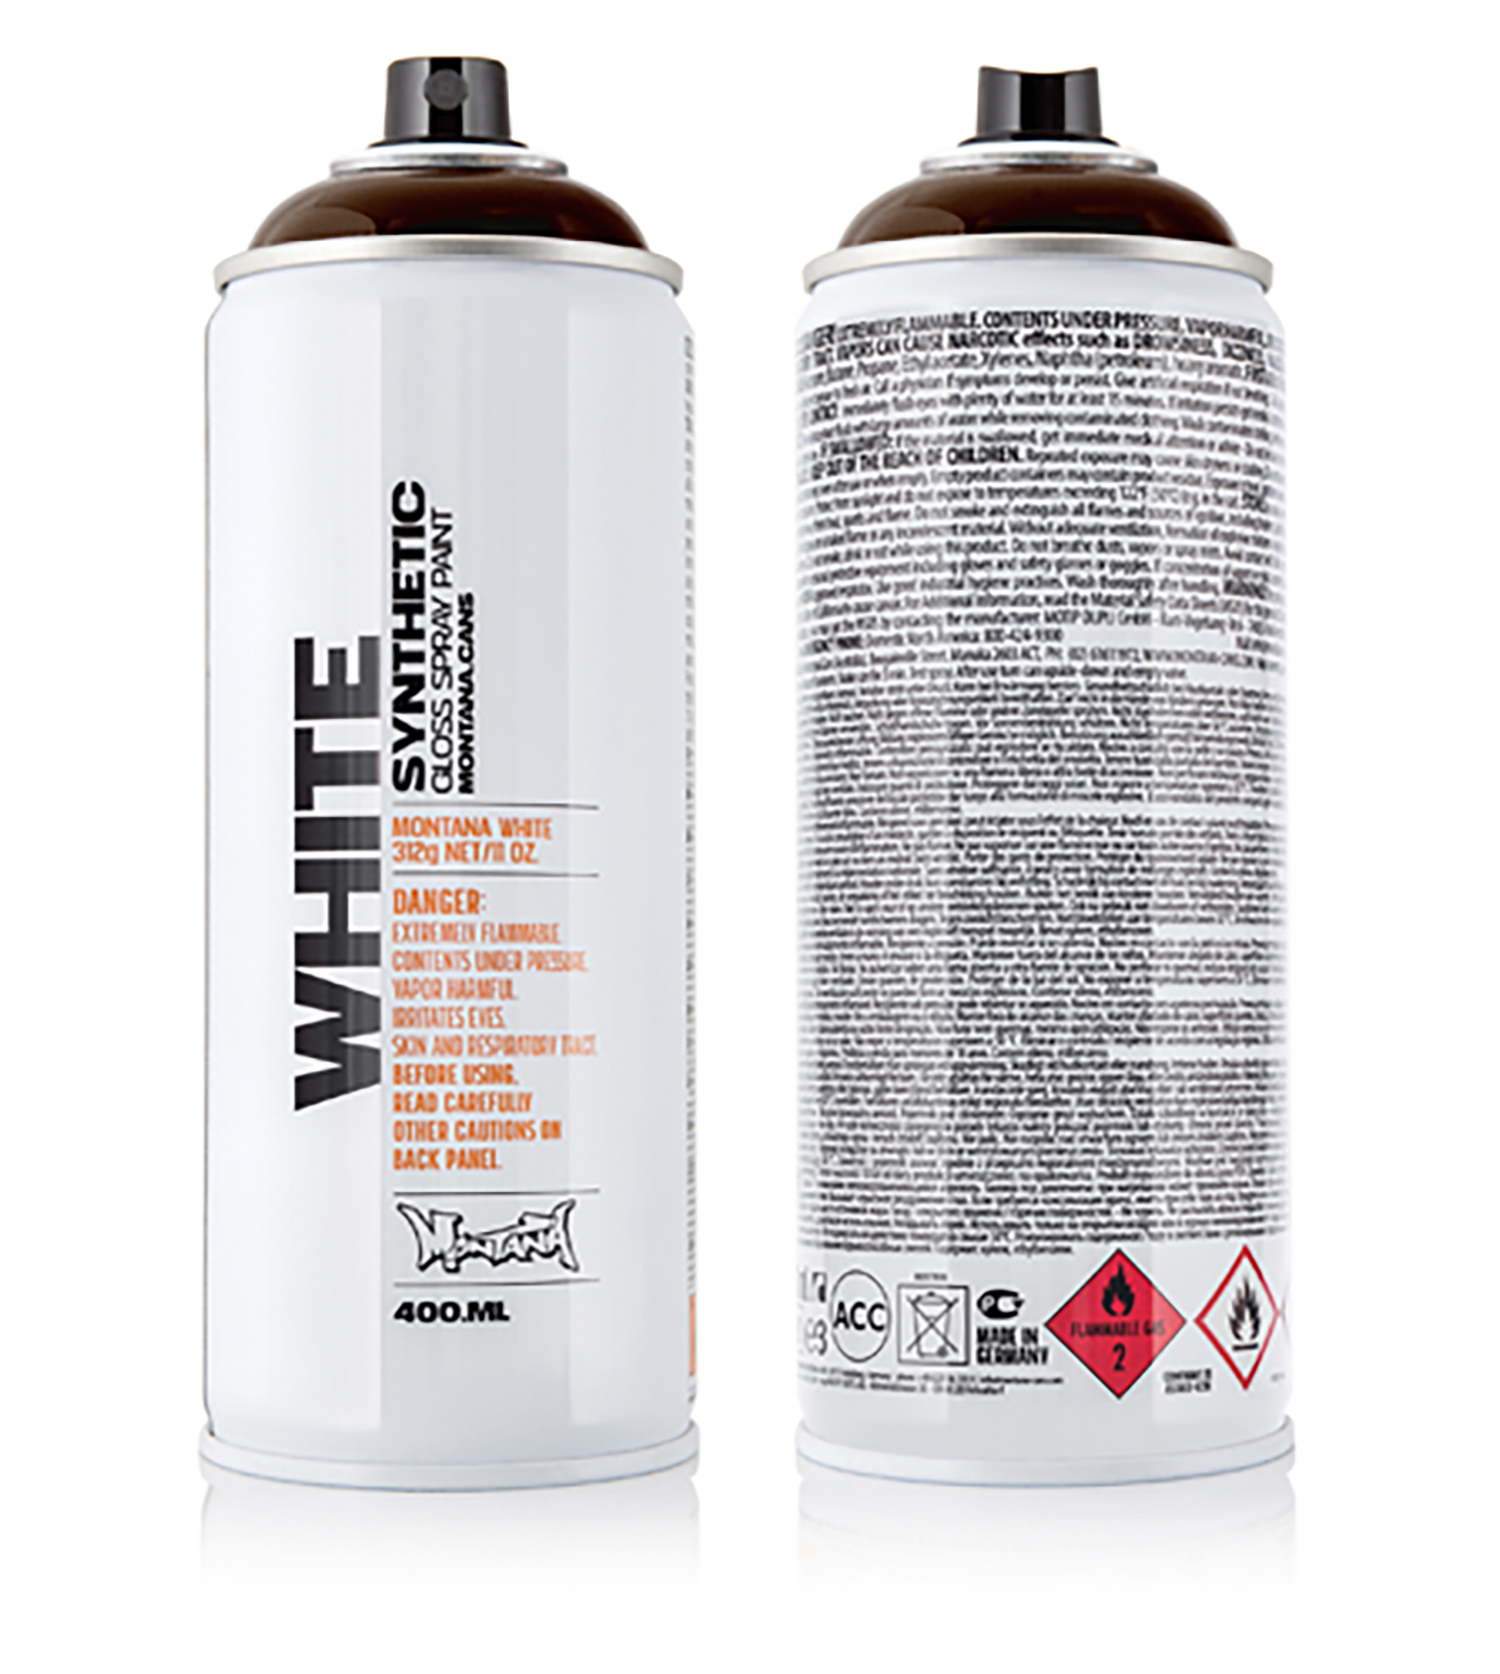 MONTANA-WHITE-SPRAY-400ML-3090